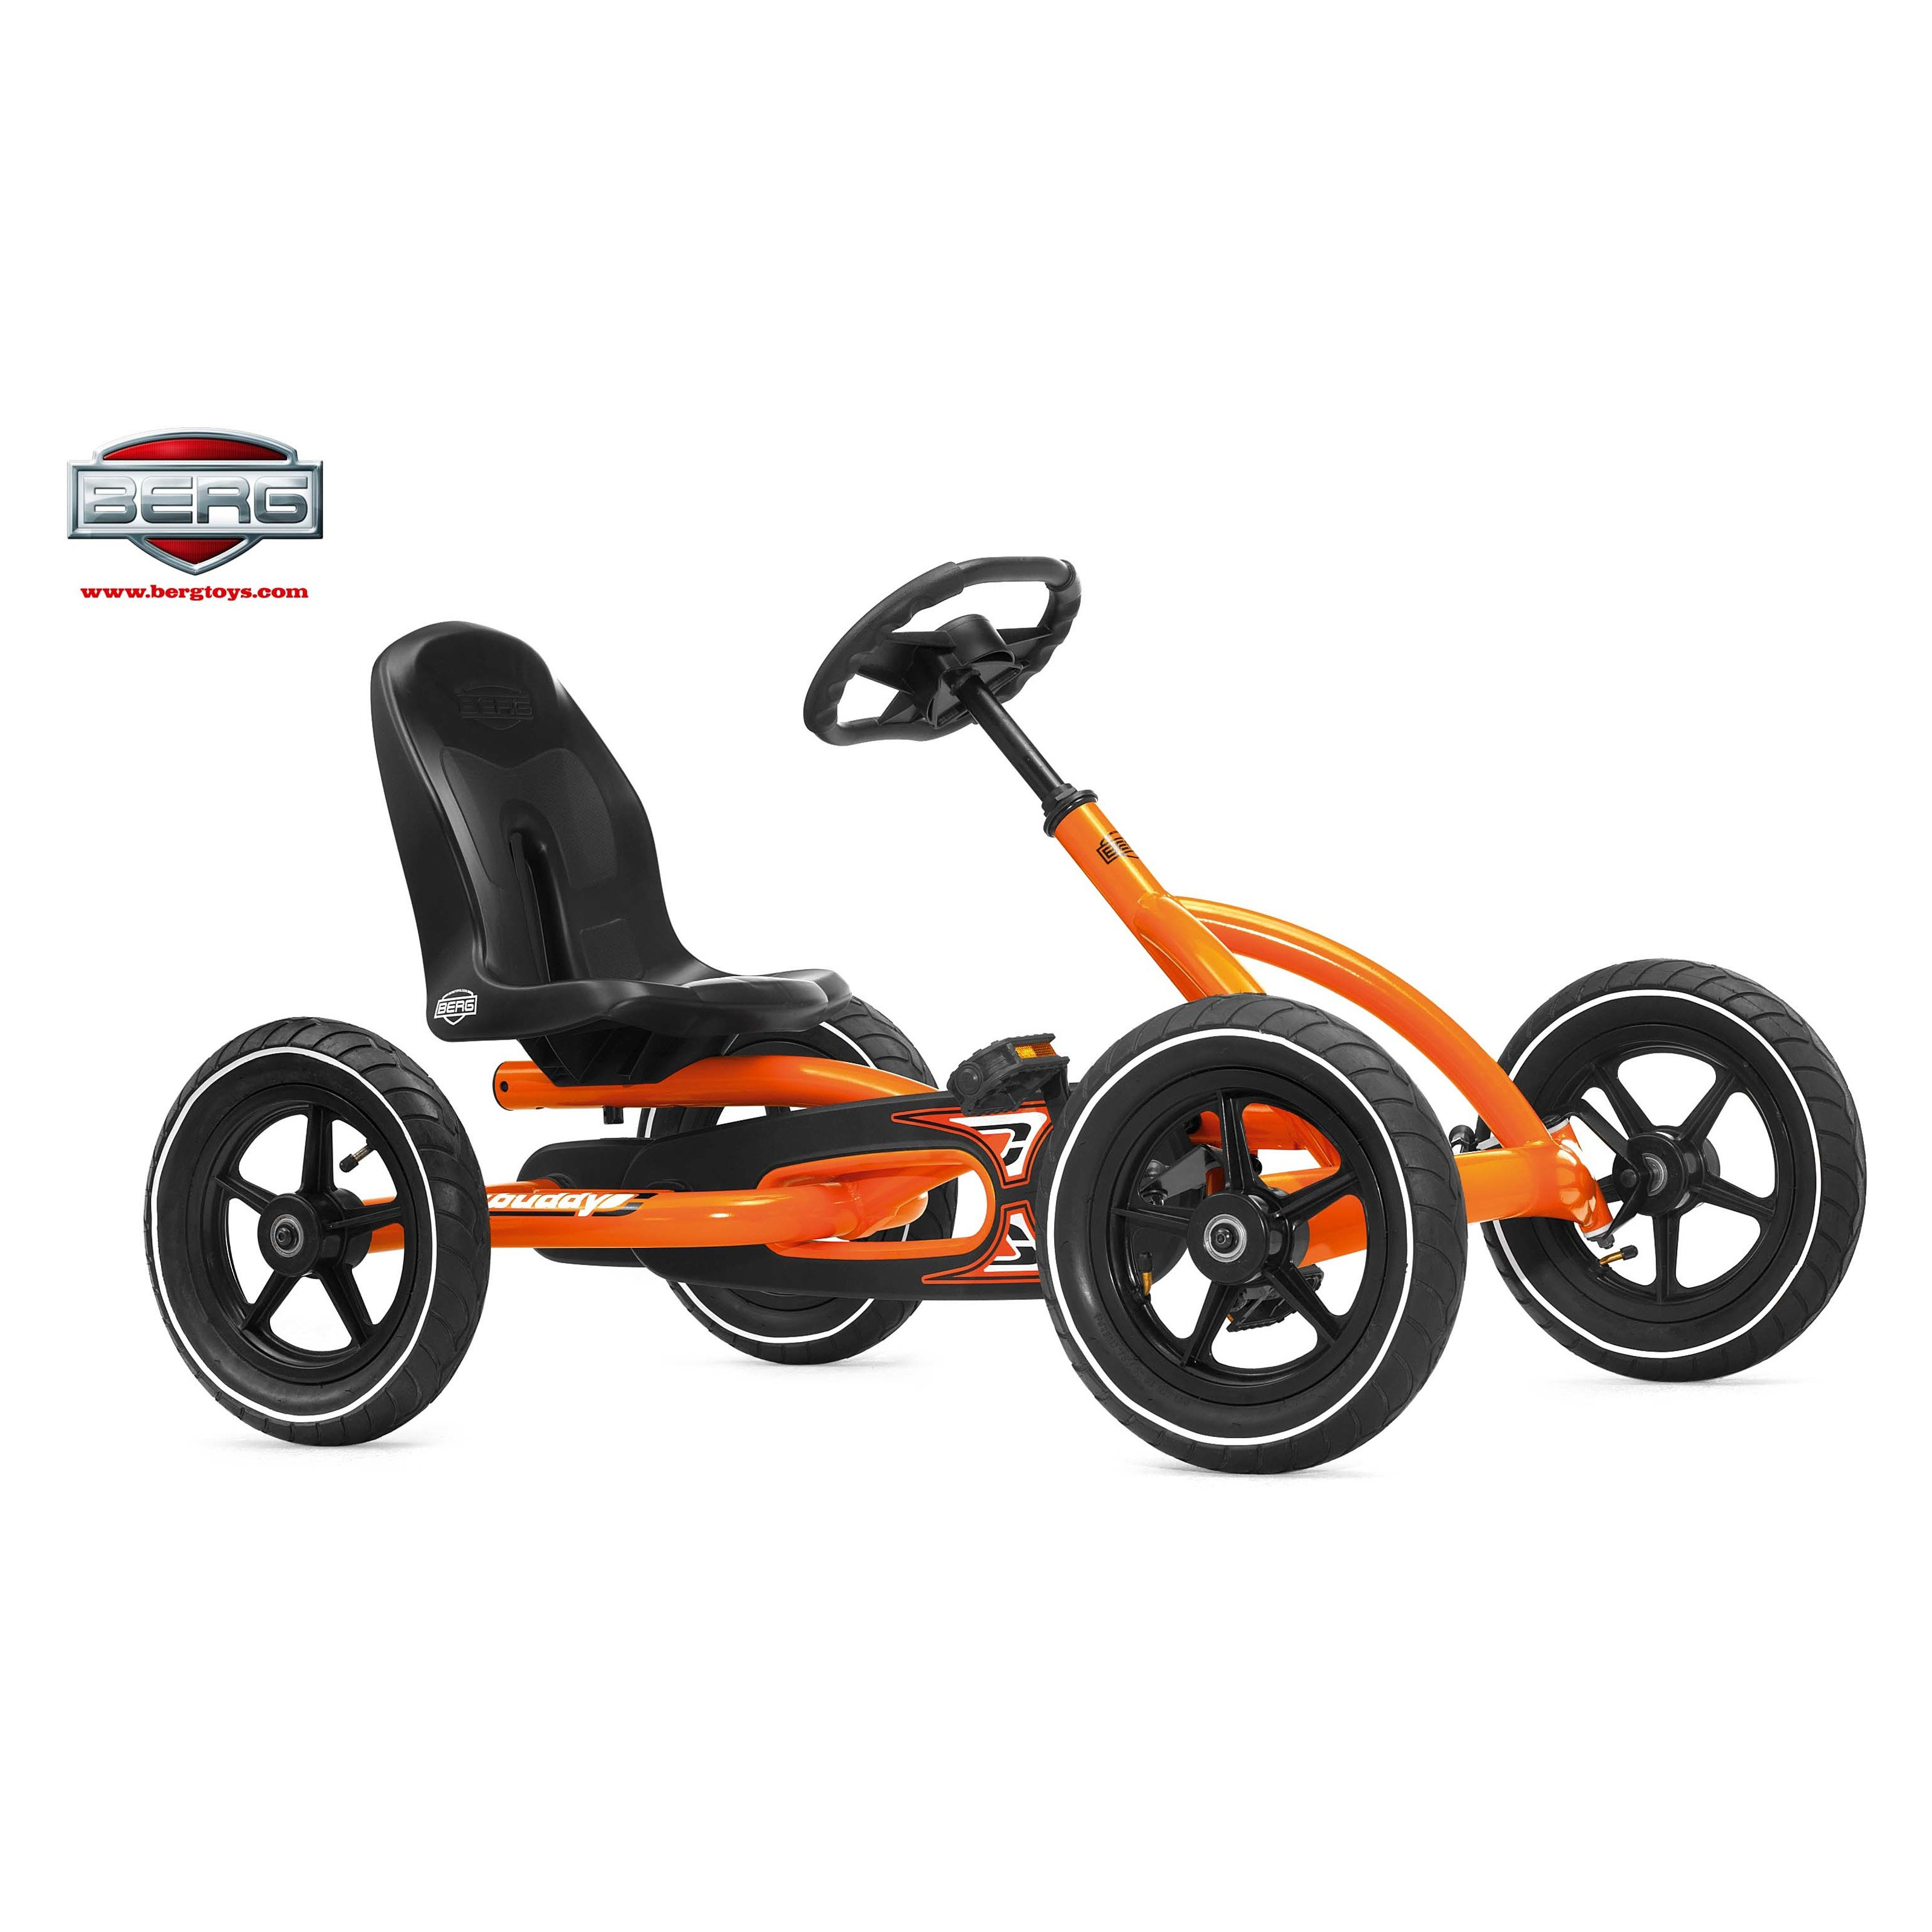 Berg USA Buddy Pedal Go Kart - Orange